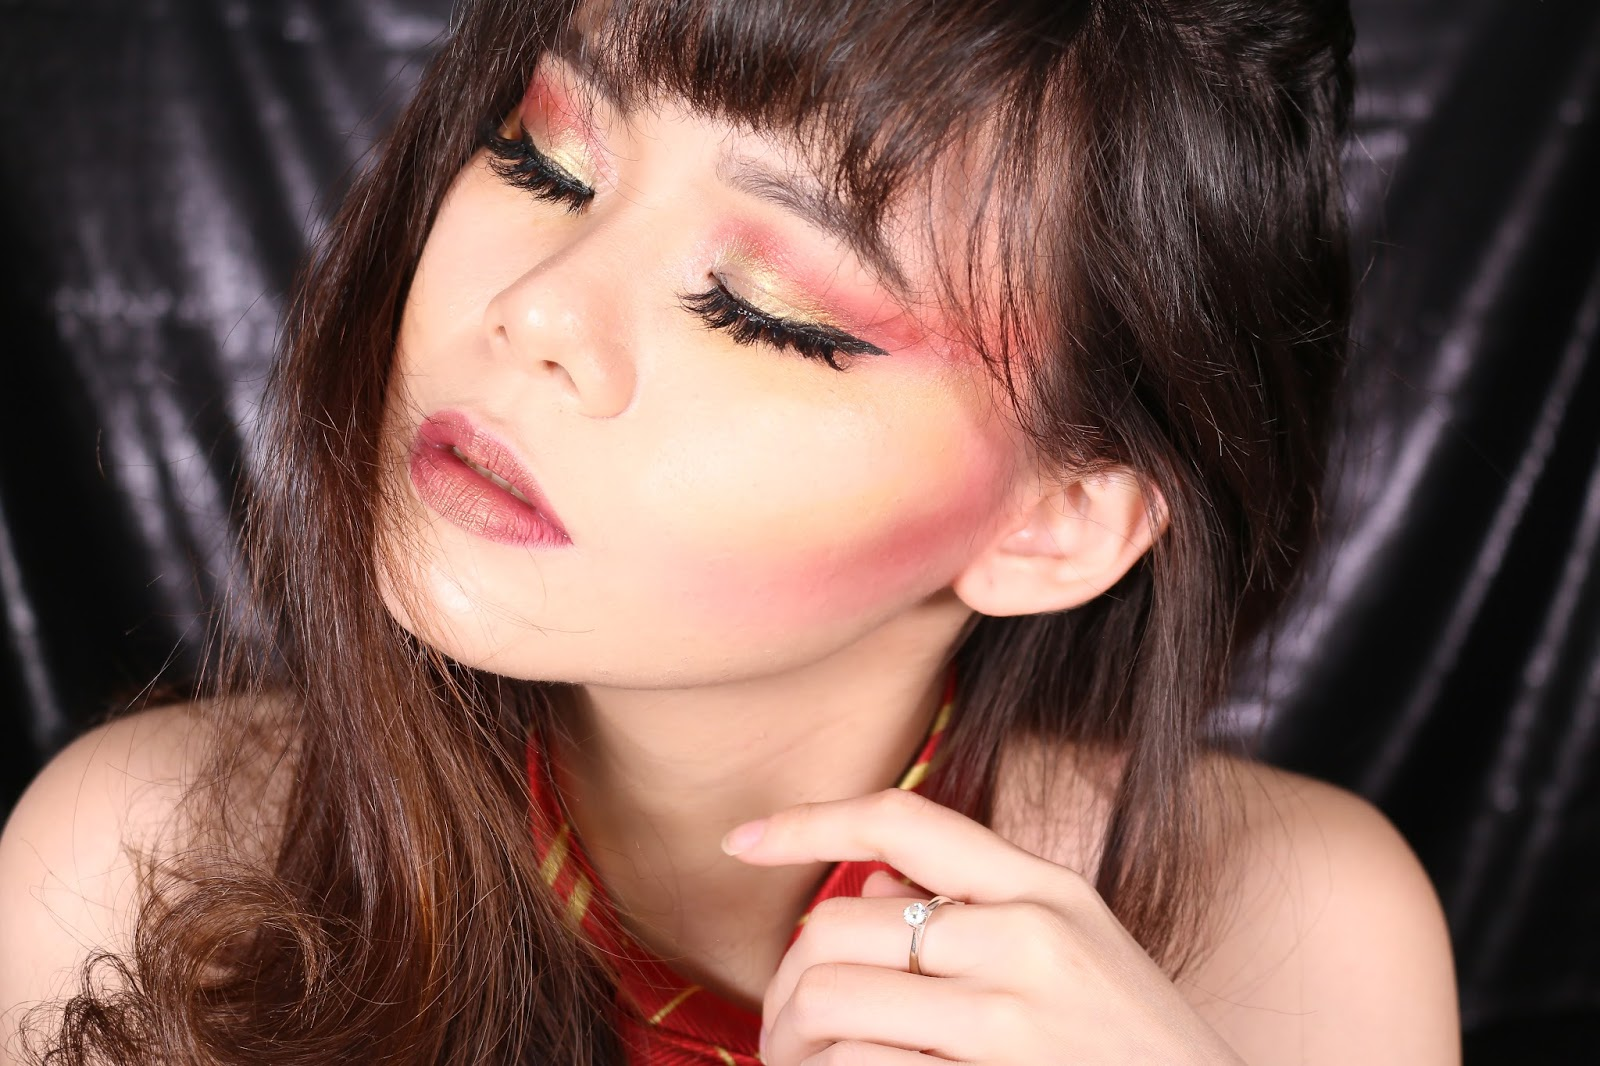 tutorial, makeup tutorial, makeup indonesia, makeup harry potter, gryffindor makeup, harry potter, potterhead, makeup halloween, halloween makeup, fire makeup, red makeup, sexy makeup